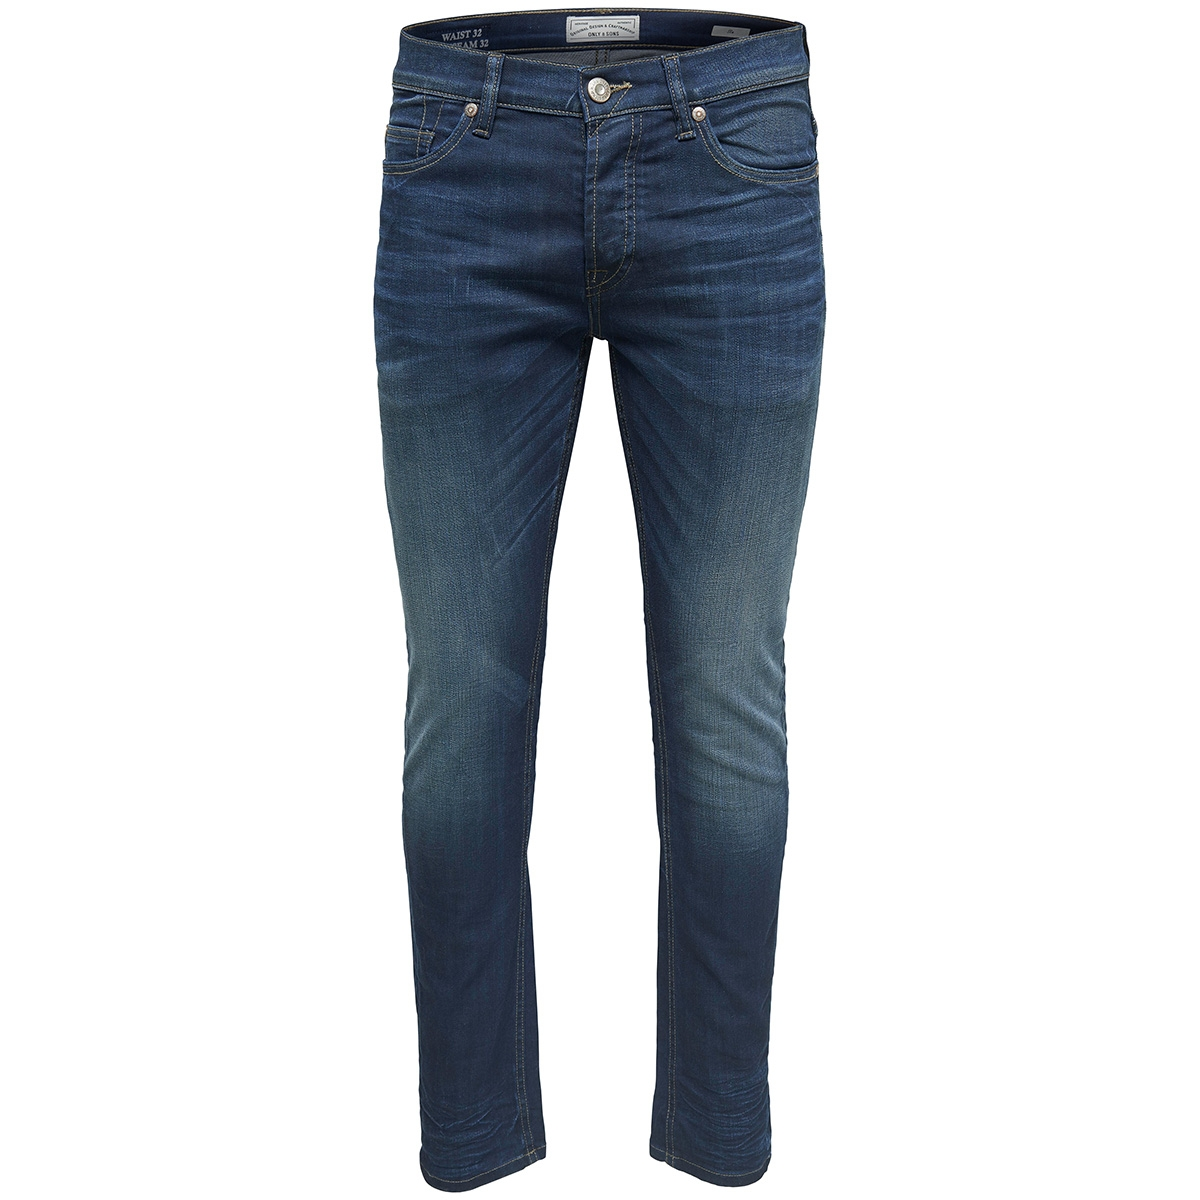 onsloom coa washed dcc 0445 noos 22010445 only & sons jeans blue denim